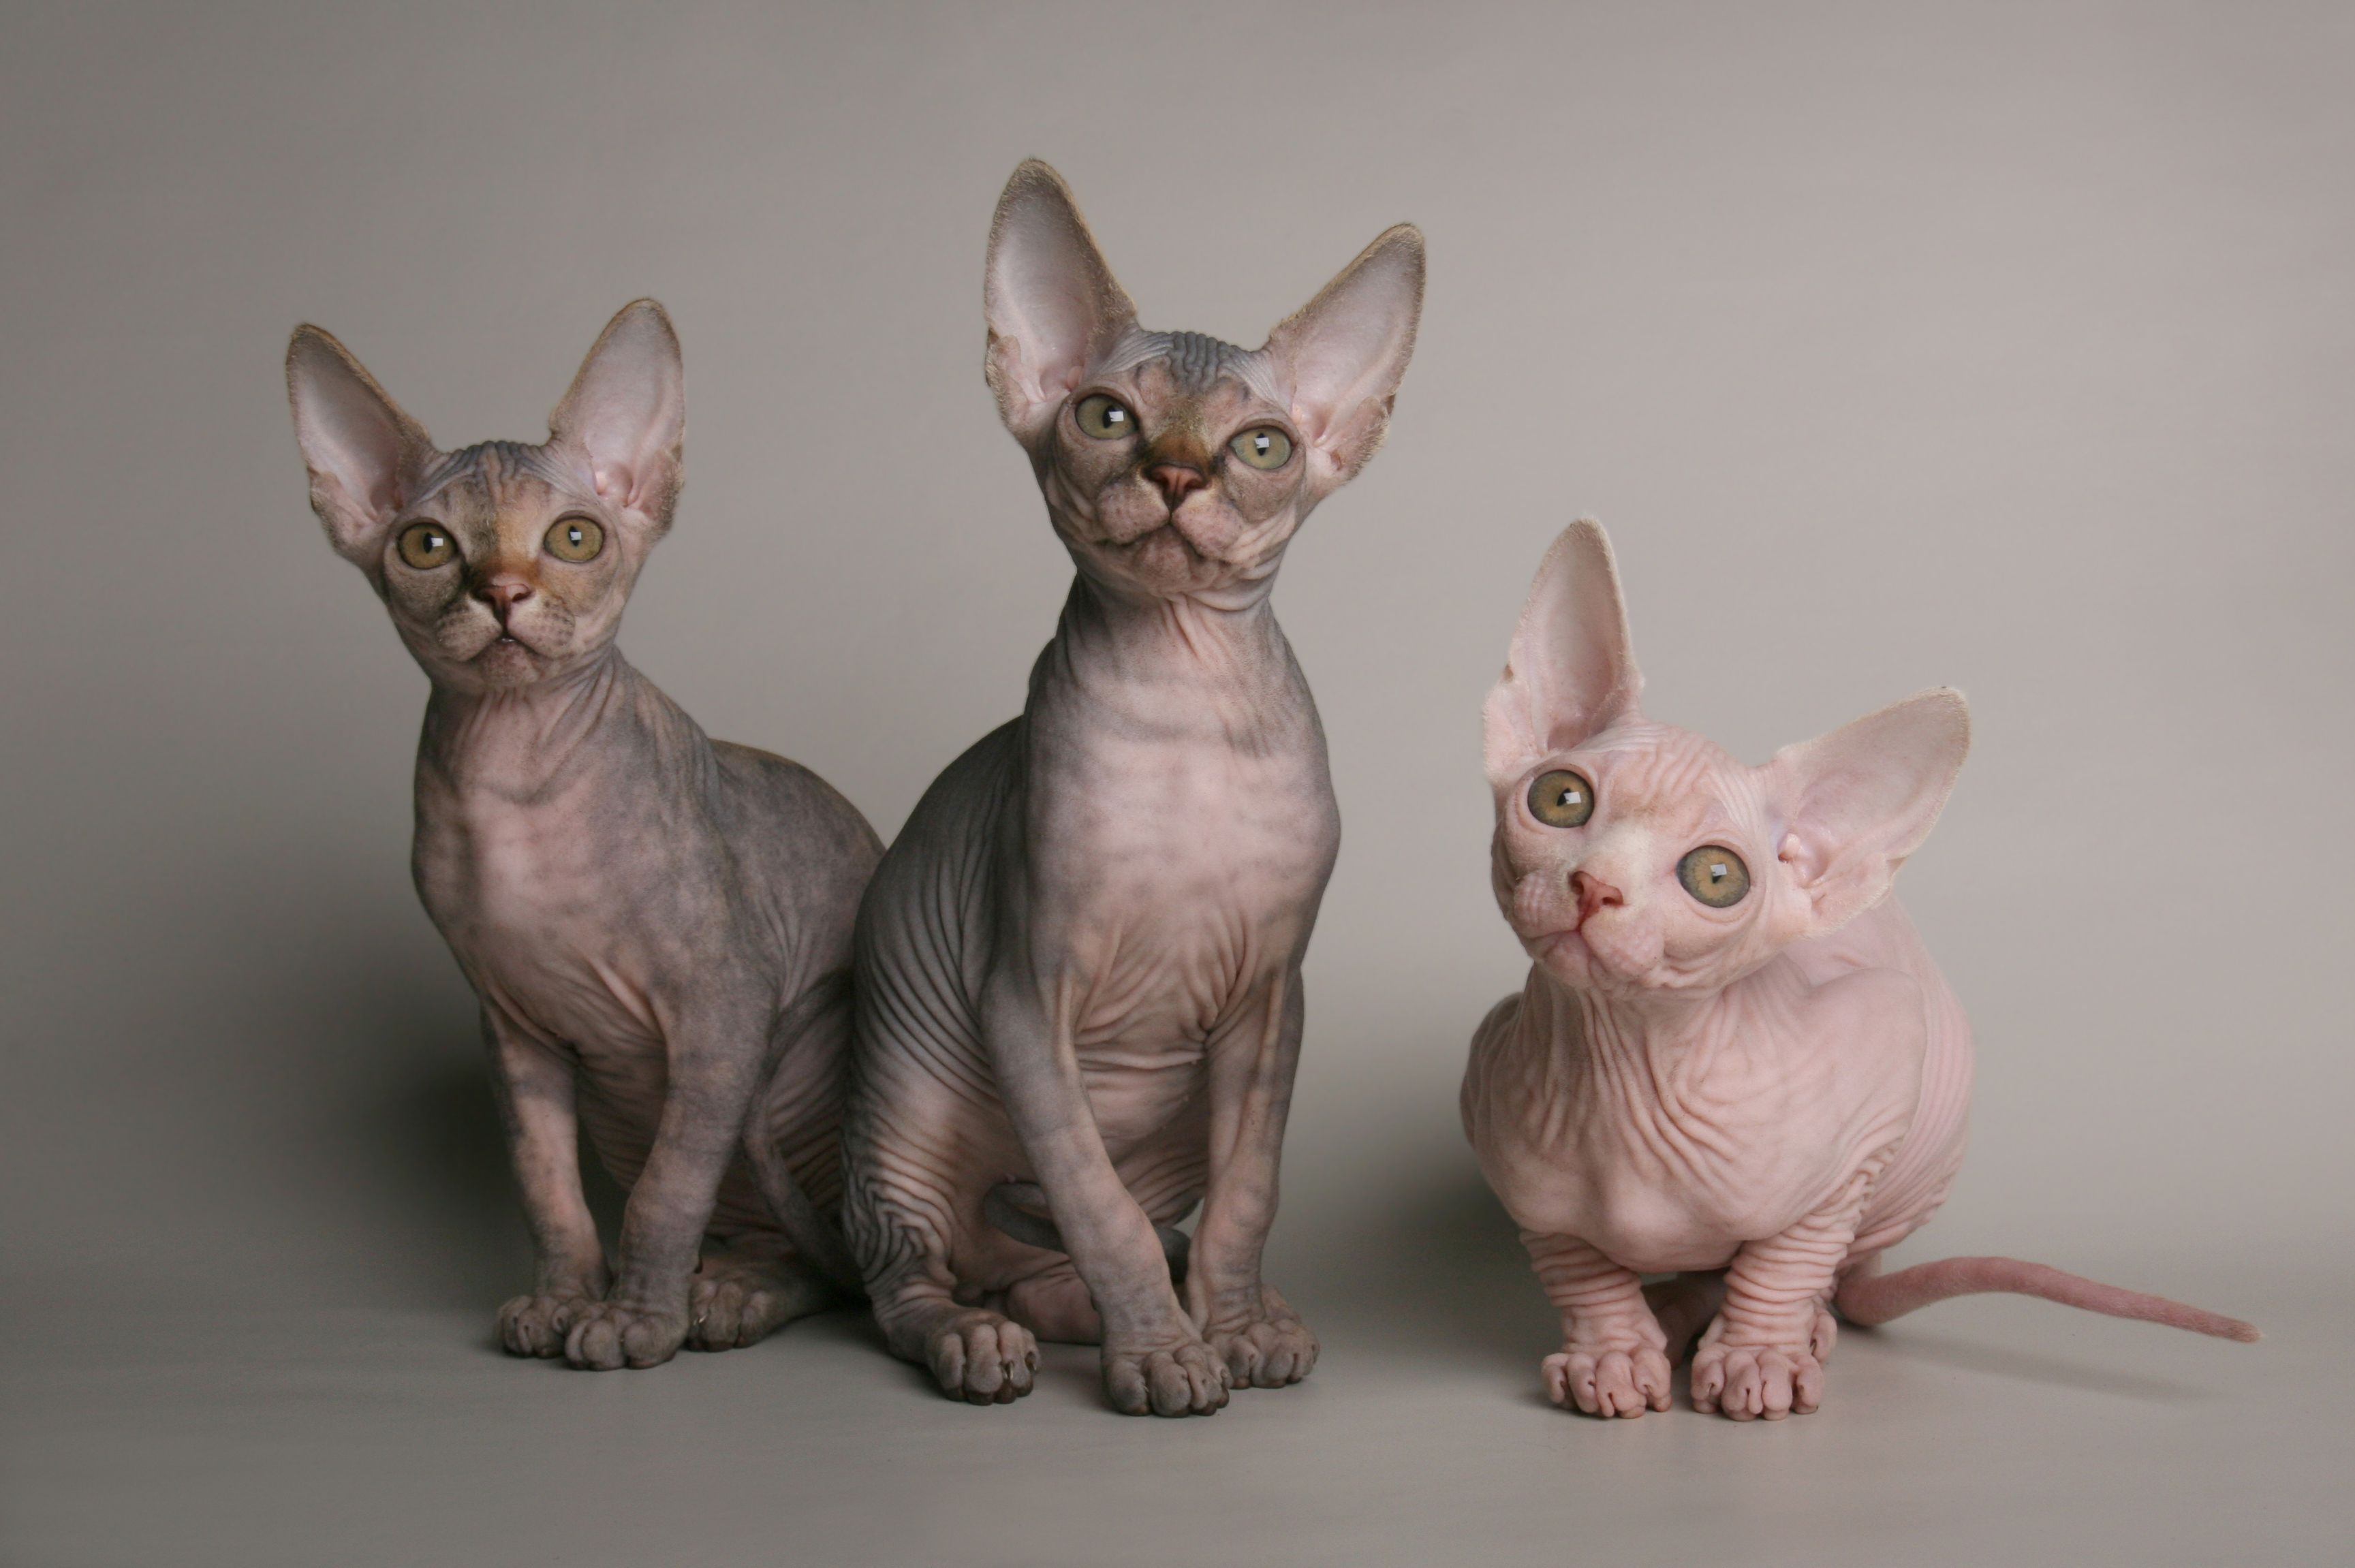 Wrapping up There you have it on how much a Sphinx cat and